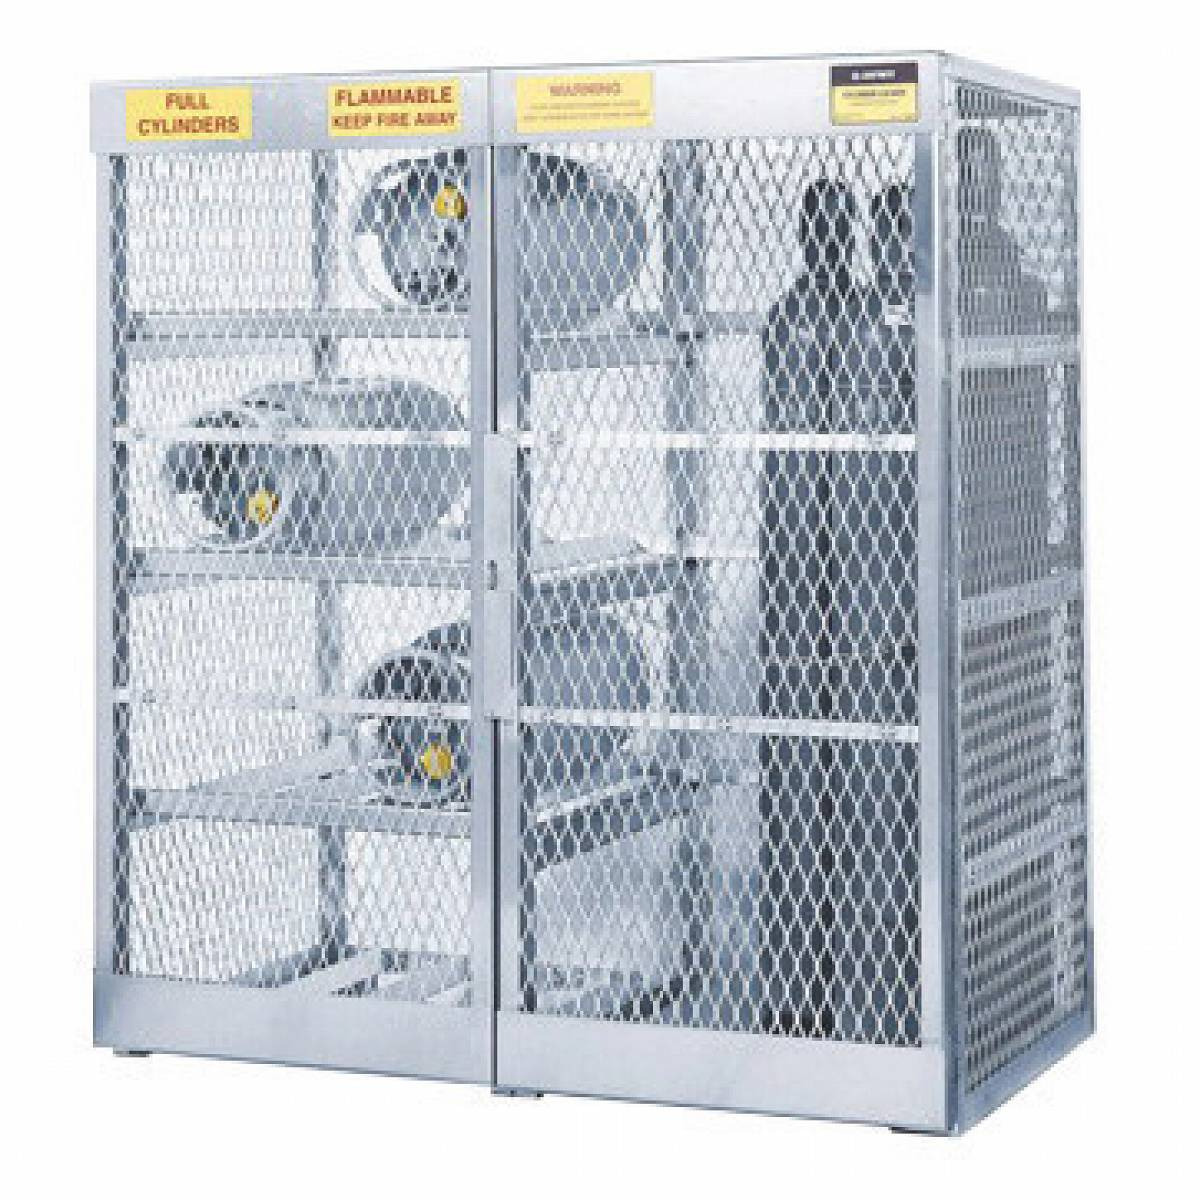 Store Home Template Vj 98 Pipe Stand Ridgid 56657 Justrite 60 X 65 32 Aluminum Vertical 10 Cylinder Horizontal 8 Combo Storage Locker With 1 Manual Close Door And 3 Shelves For Flammables